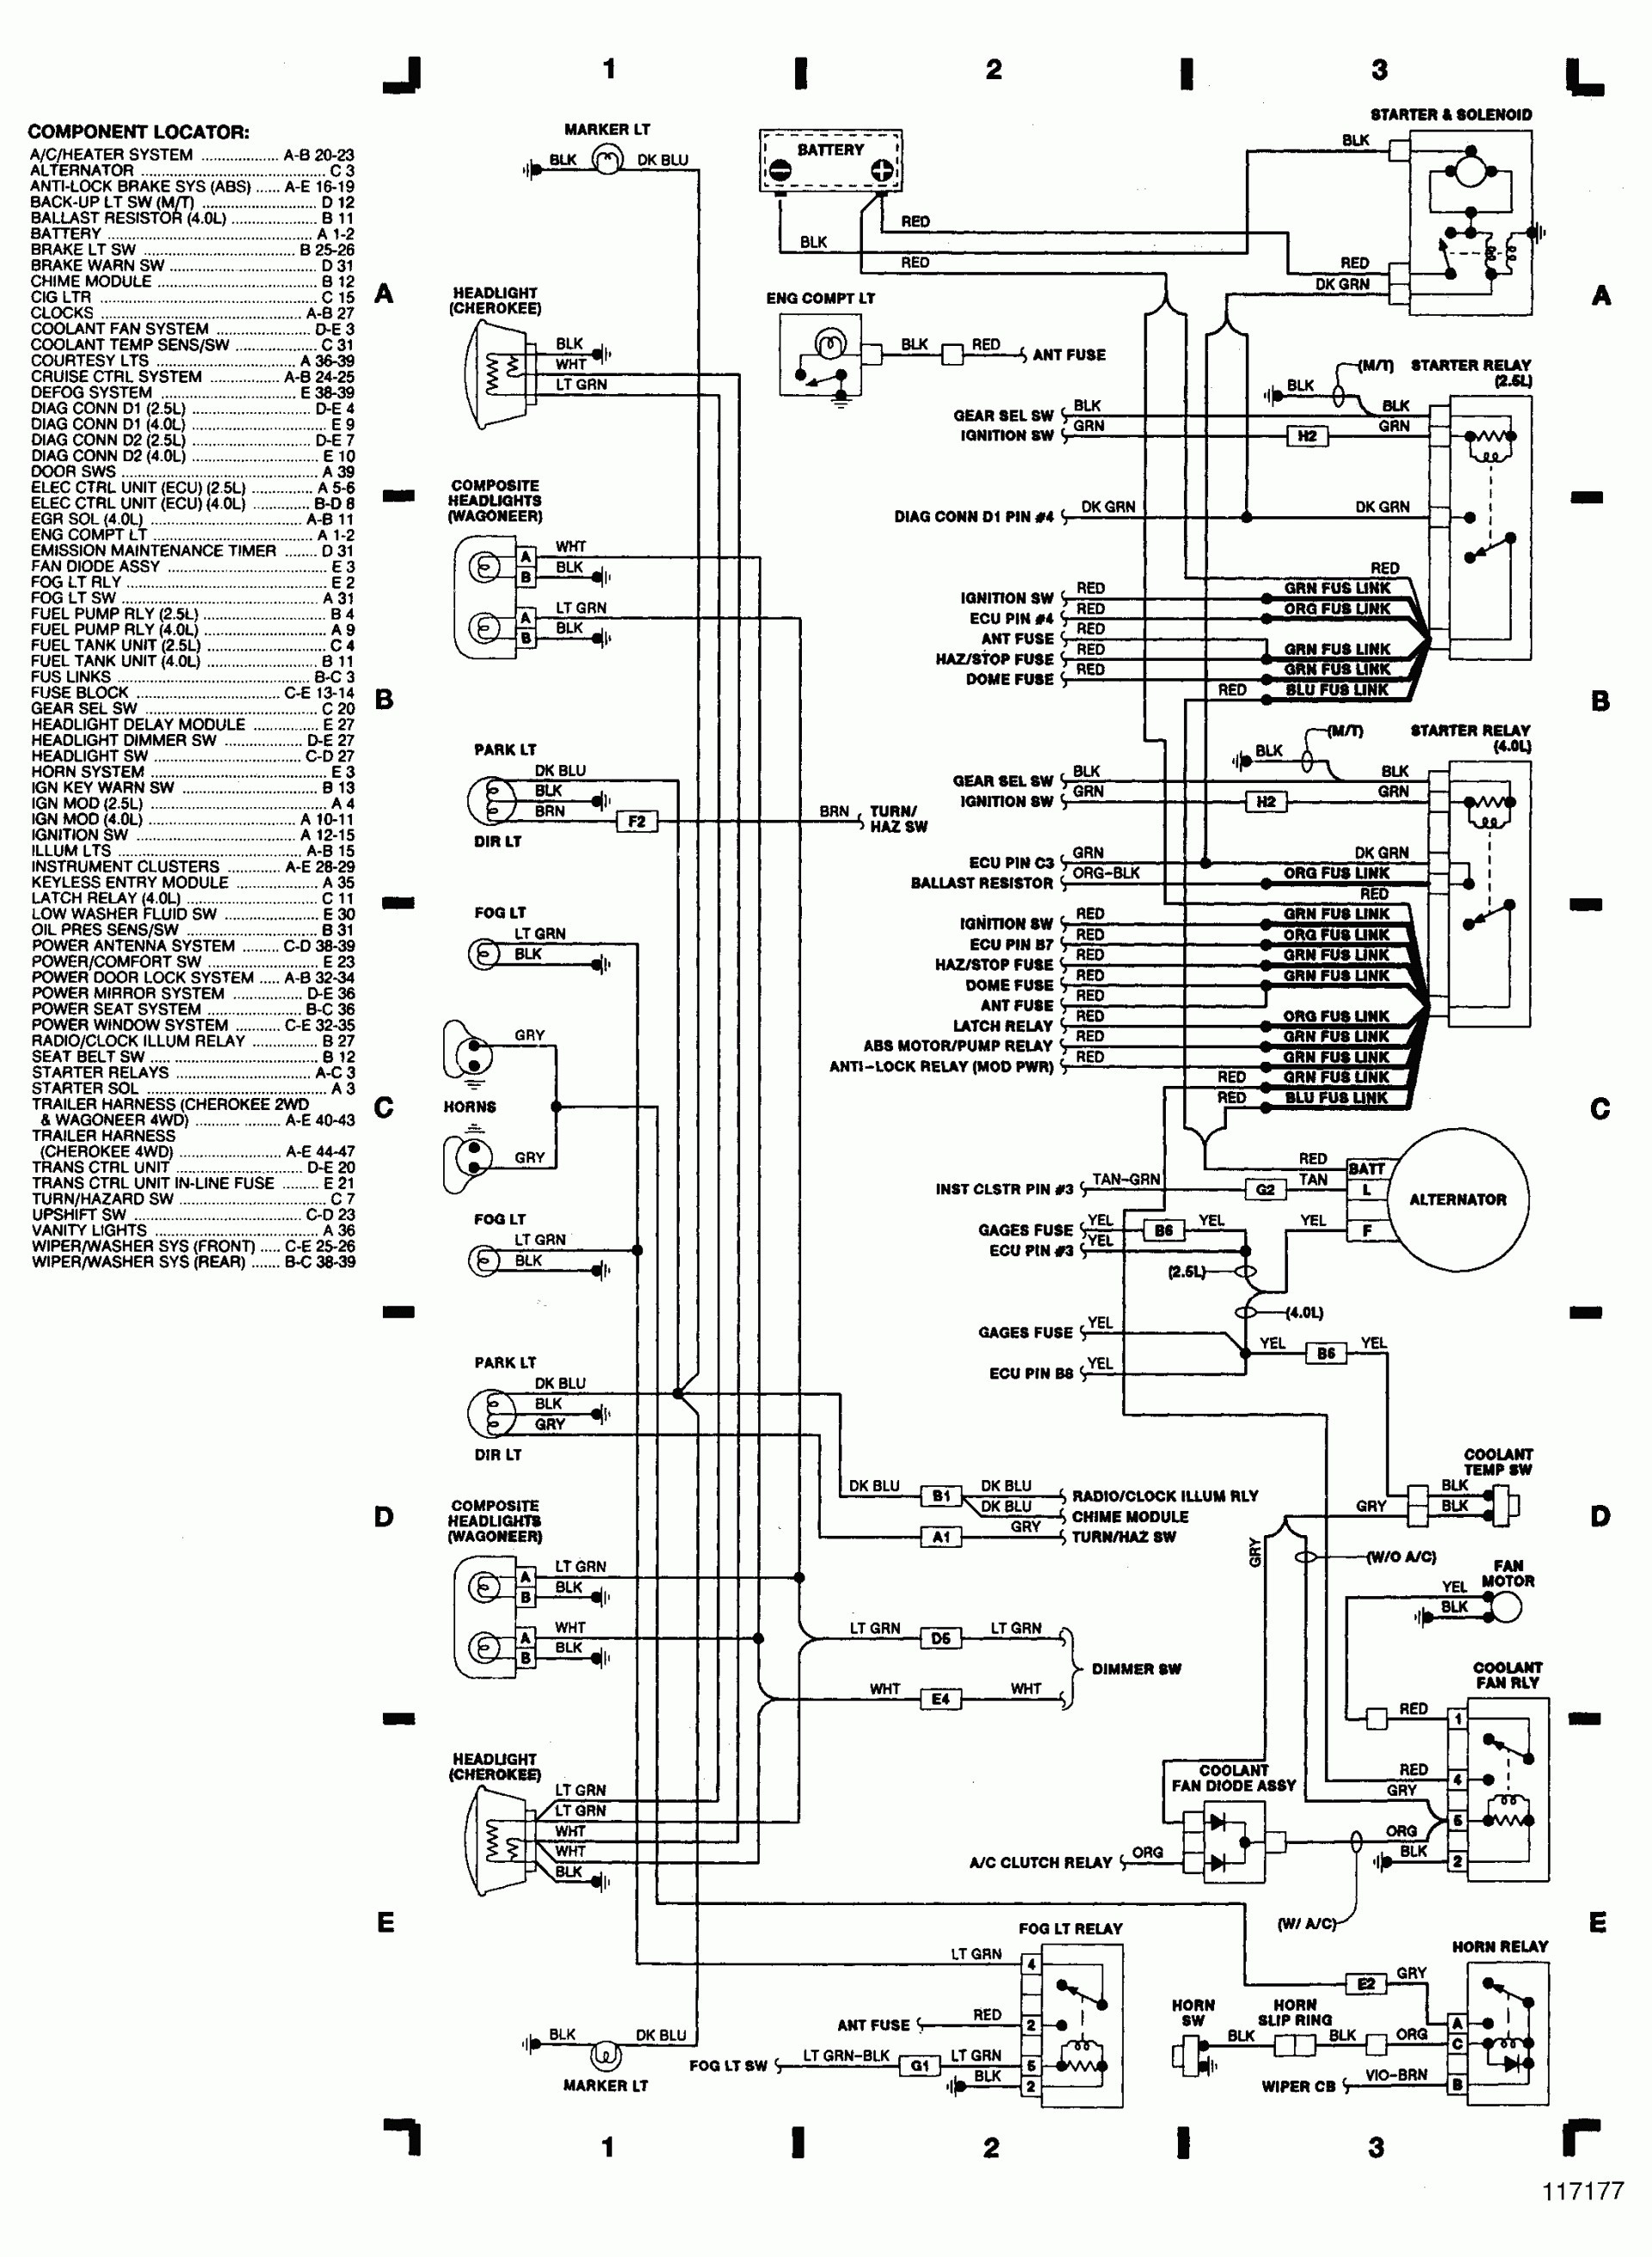 John Deere 4430 Wiring Diagram Content Resource Of 435 Unique Image Rh Mainetreasurechest Com Starter